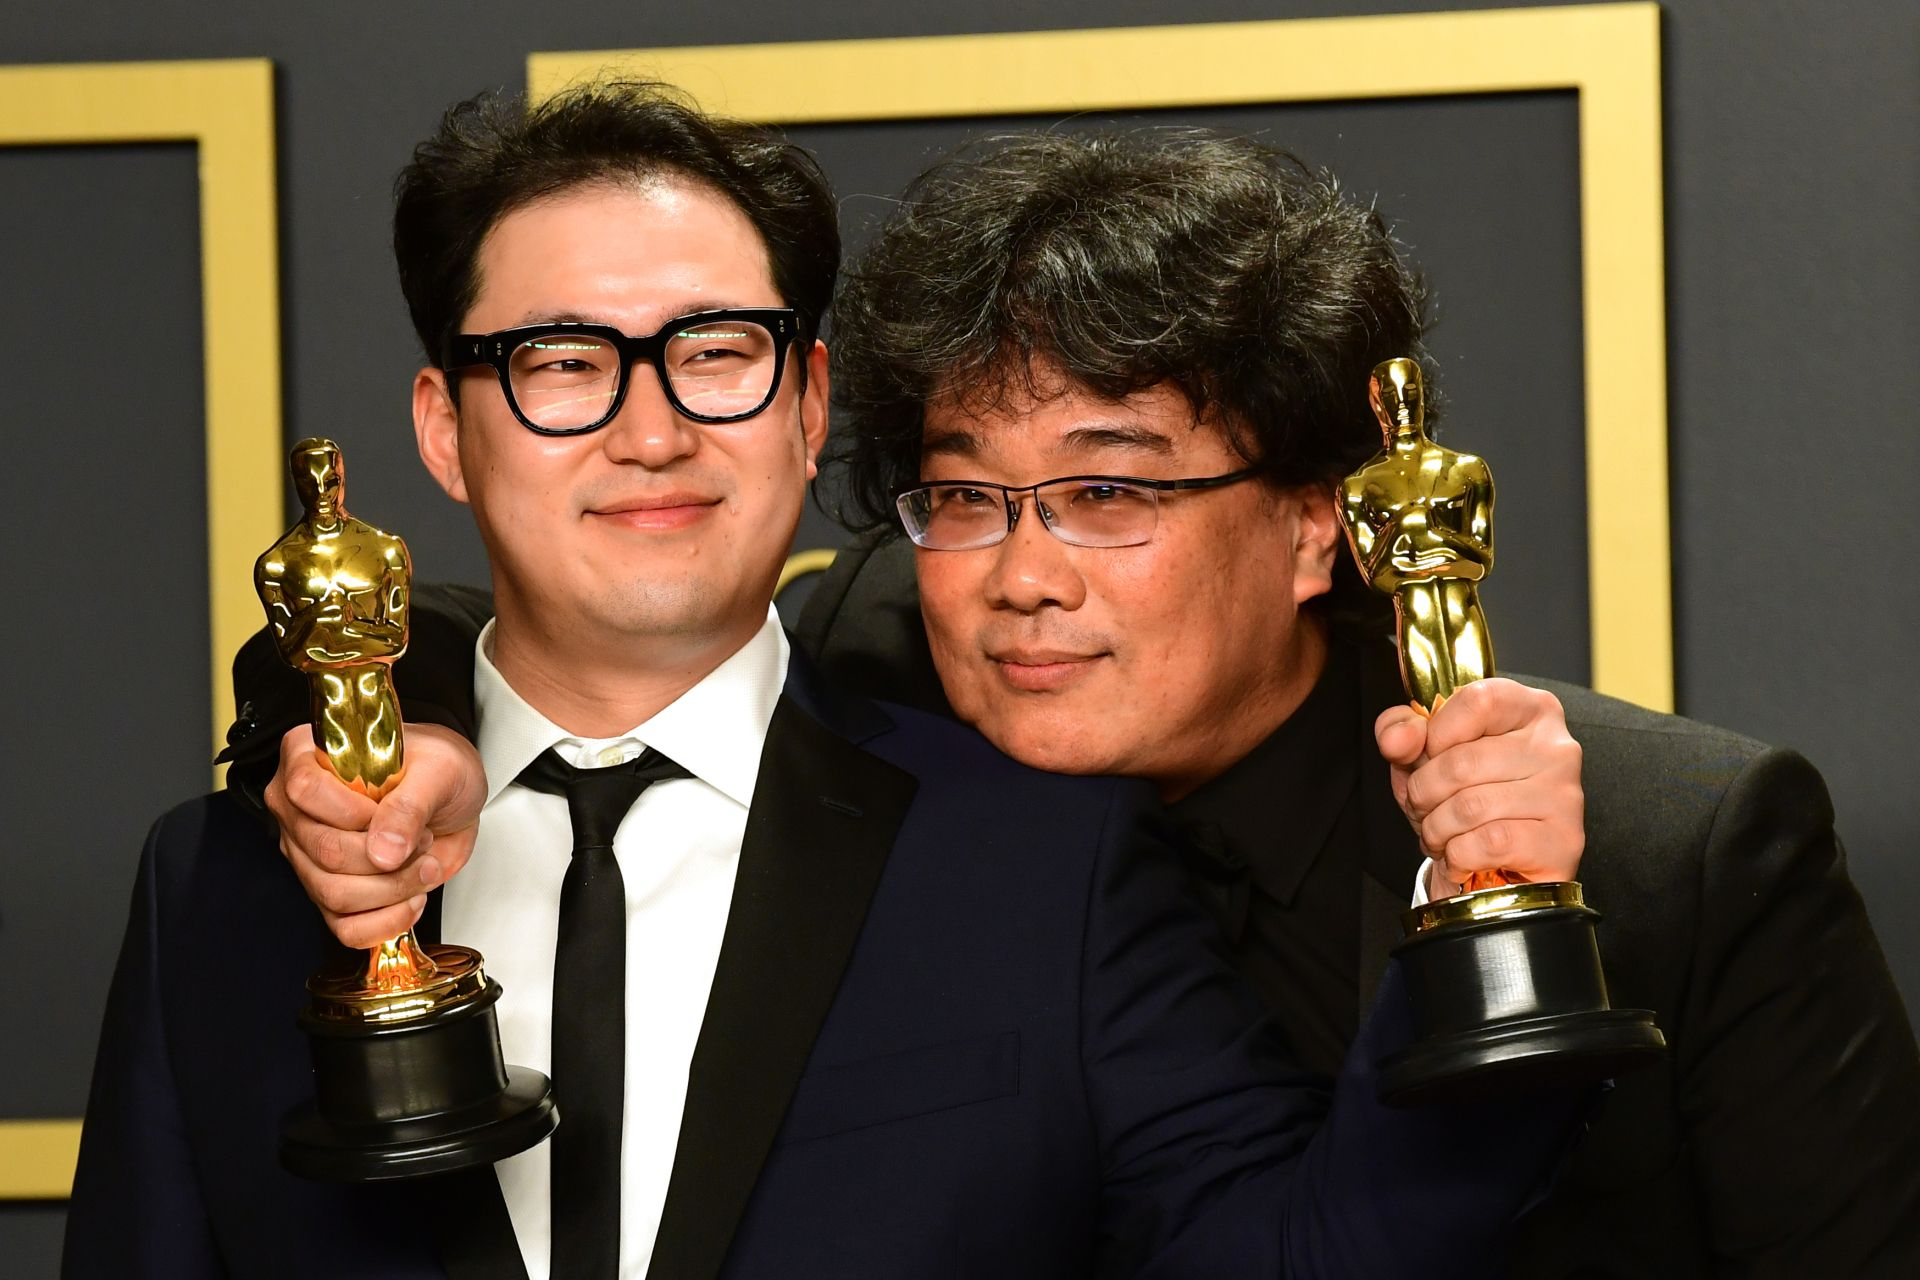 """Parasite"" writers Han Jin-won (L) and Bong Joon-ho pose in the press room with the Oscars for ""Parasite"" during the 92nd Oscars at the Dolby Theater in Hollywood, California on February 9, 2020. - Bong Joon-ho won for Best Director, Best Movie, Best International Feature Film and Best Original Screenplay for ""Parasite"". (Photo by FREDERIC J. BROWN / AFP)"